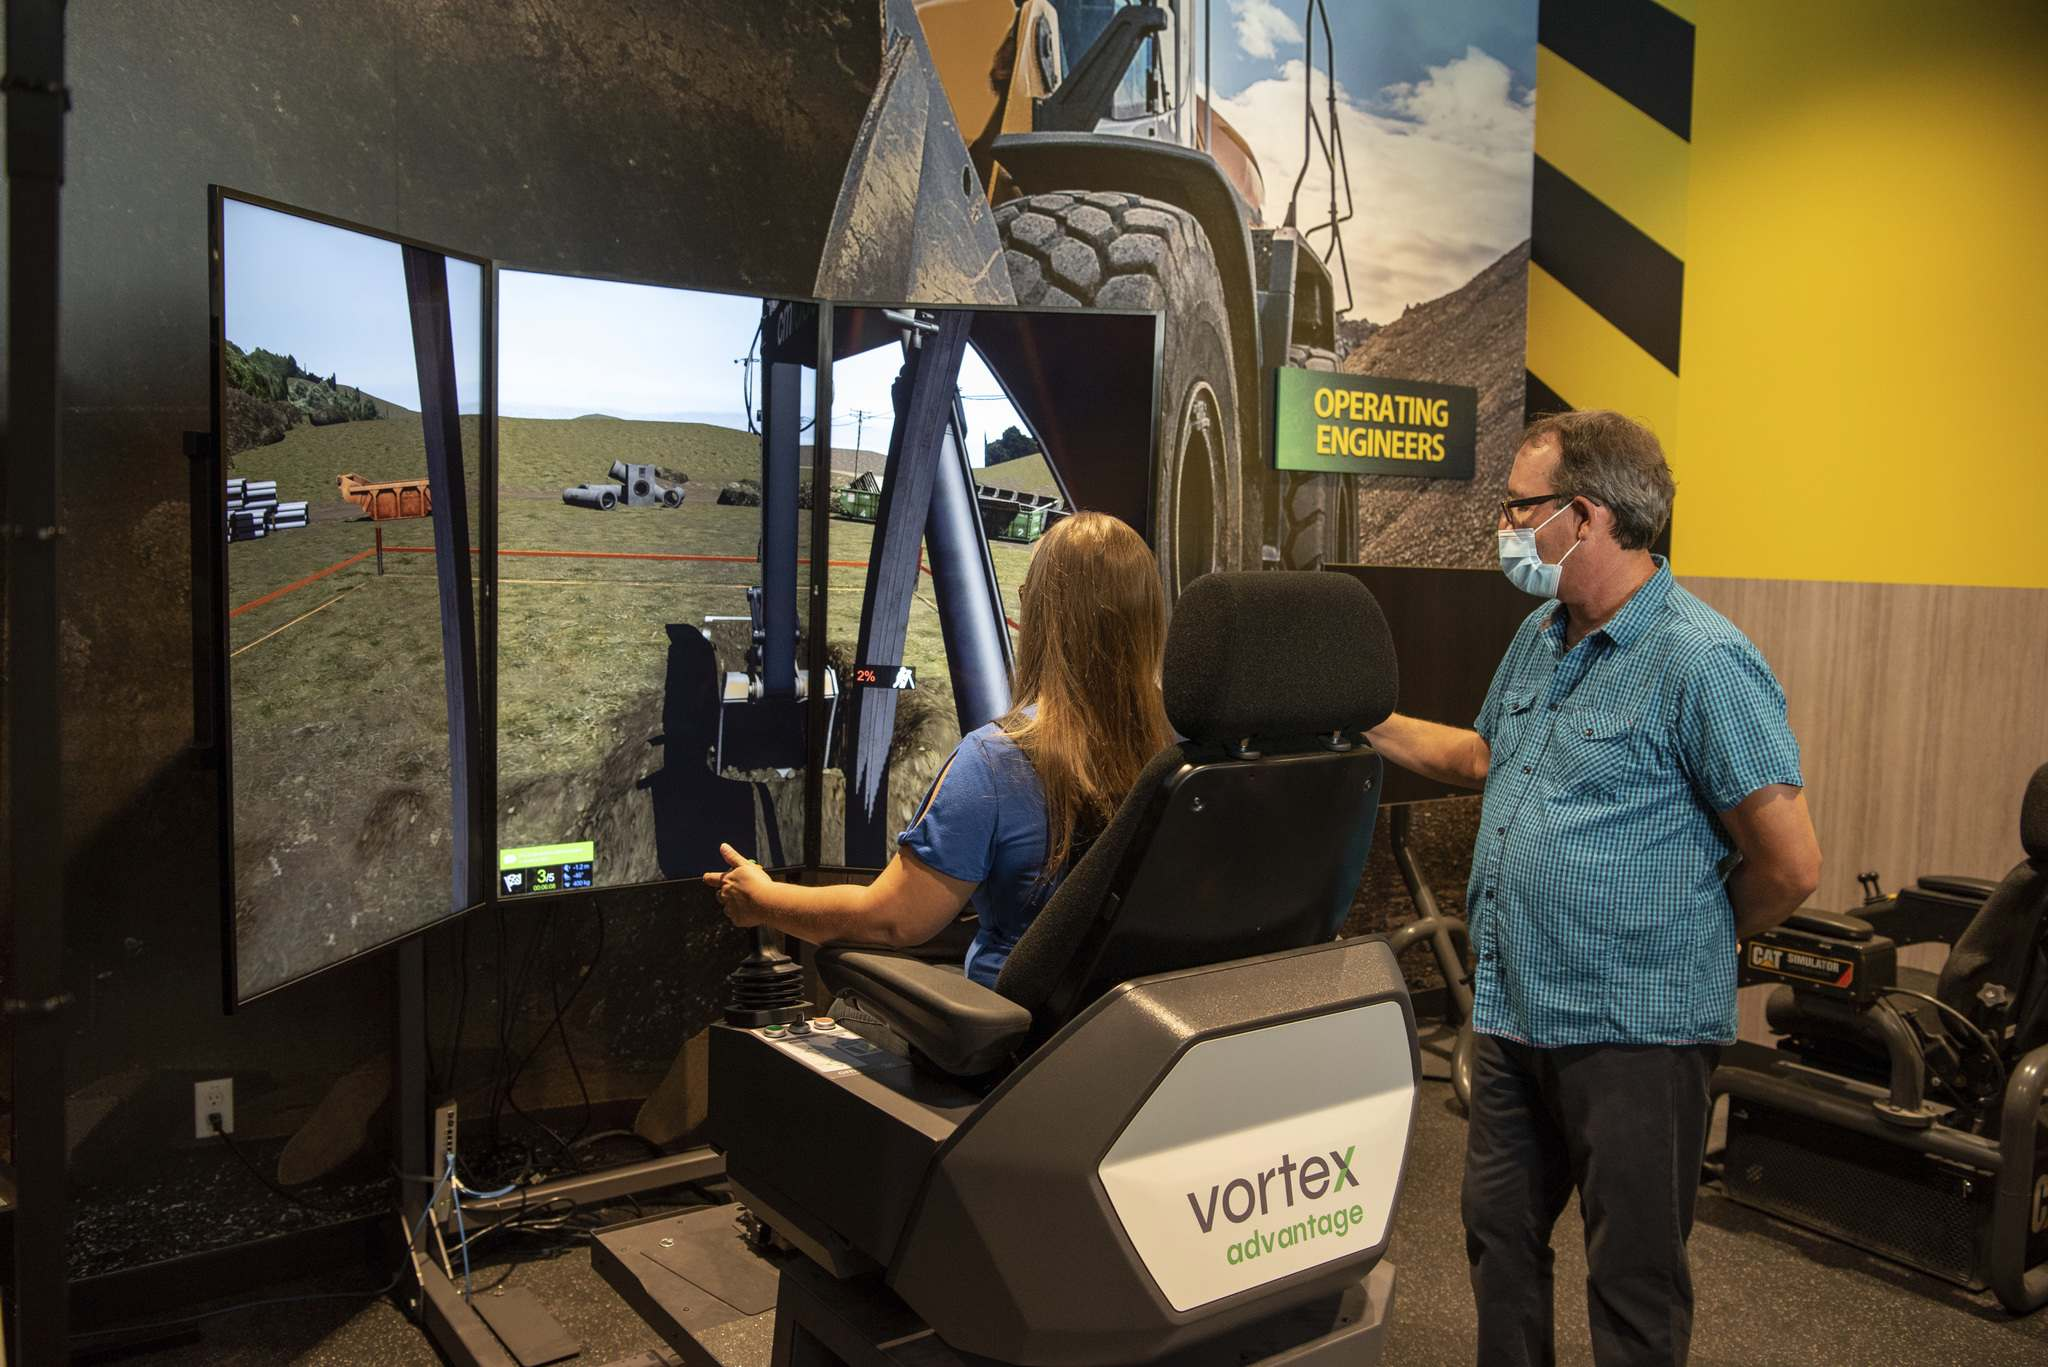 ALEX LUPUL / WINNIPEG FREE PRESS</p><p>Ron Armstrong, training and curriculum manager, instructs Debby Raill how to operate machinery in the new Manitoba Building Trades Institute's Try The Trades exhibition hall on Wednesday.</p>